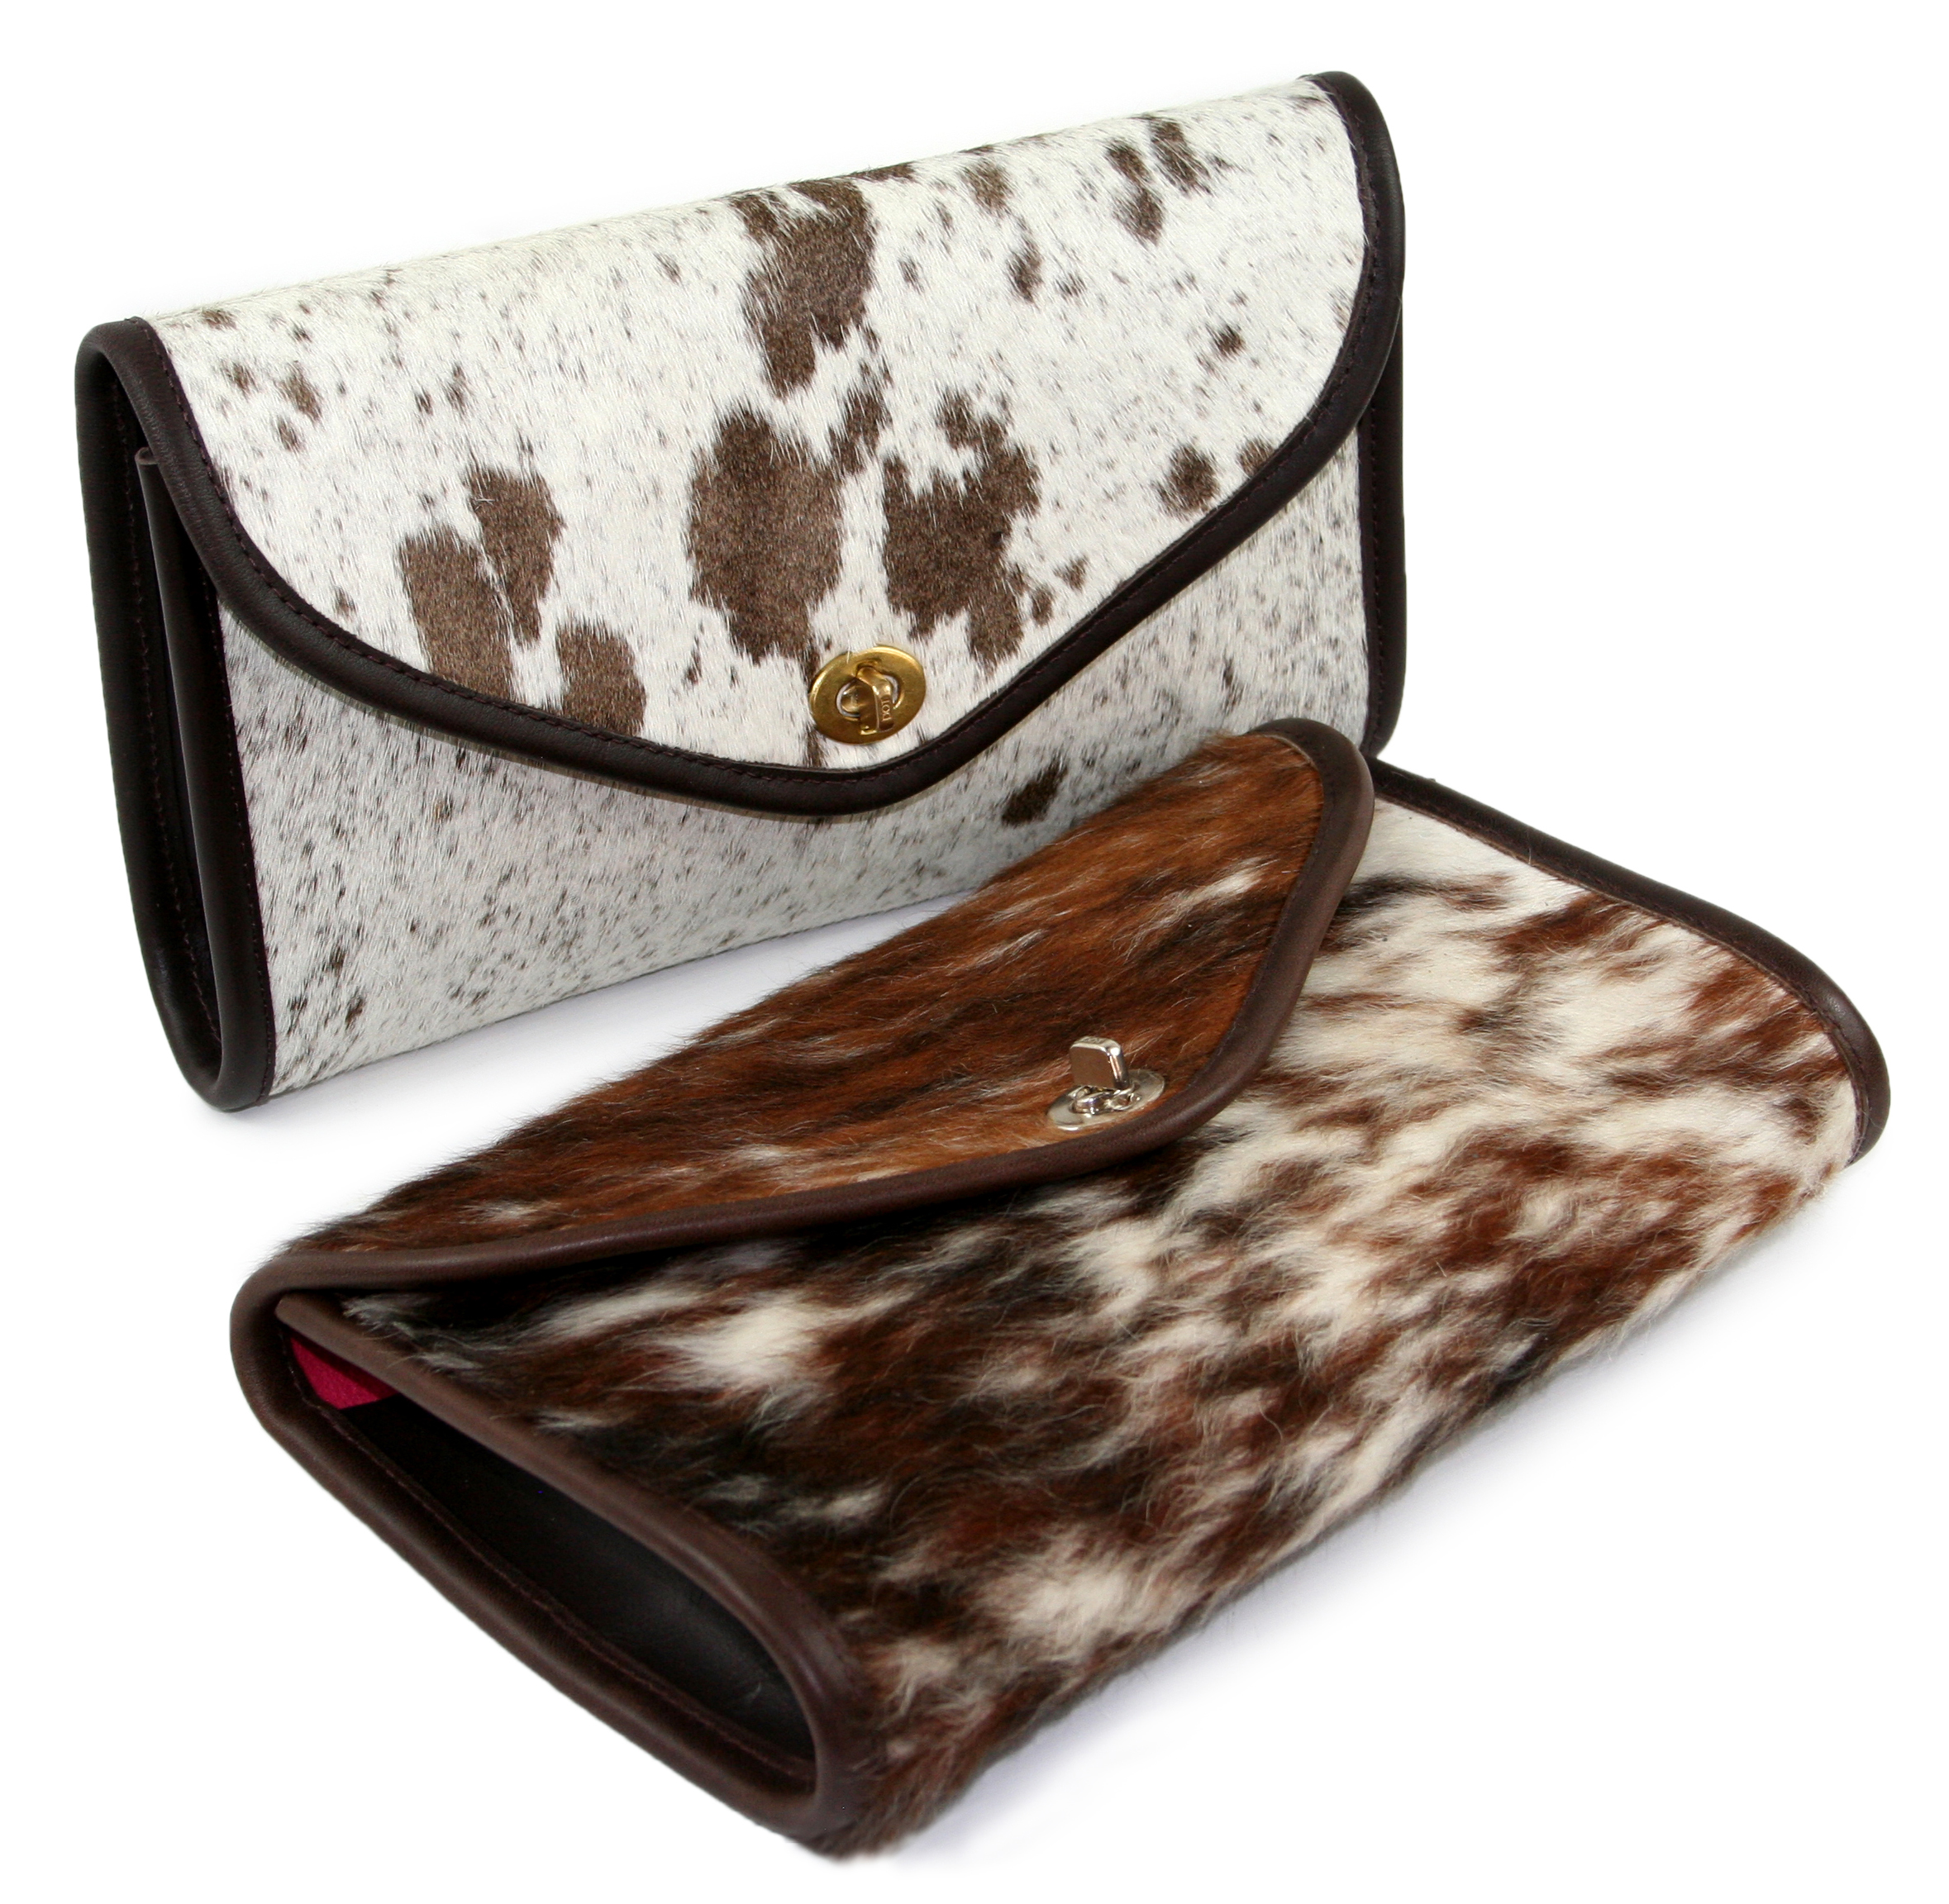 Flap Over Cow Hair Clutch with Turn Catch